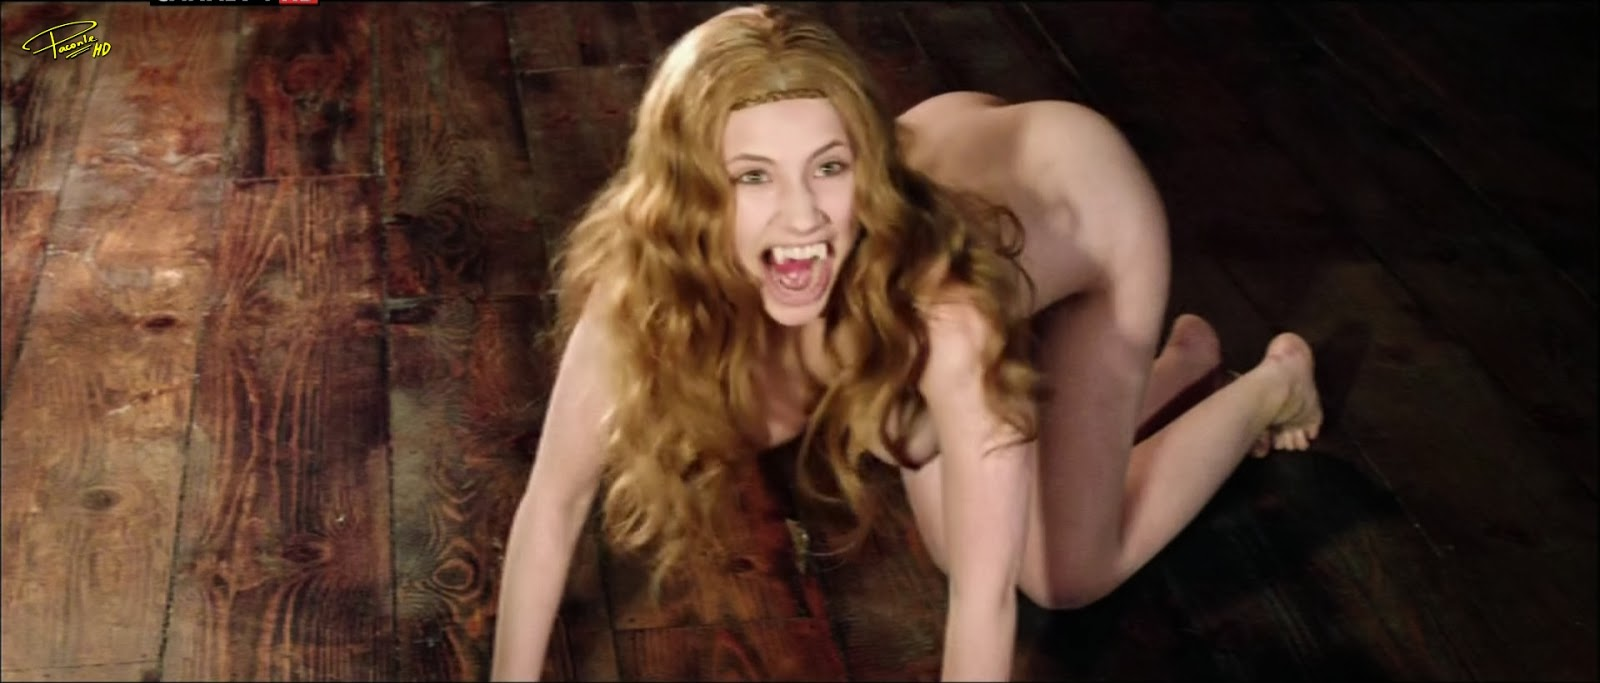 Embace of vampire movie sex scene free  adult uncensored porn star